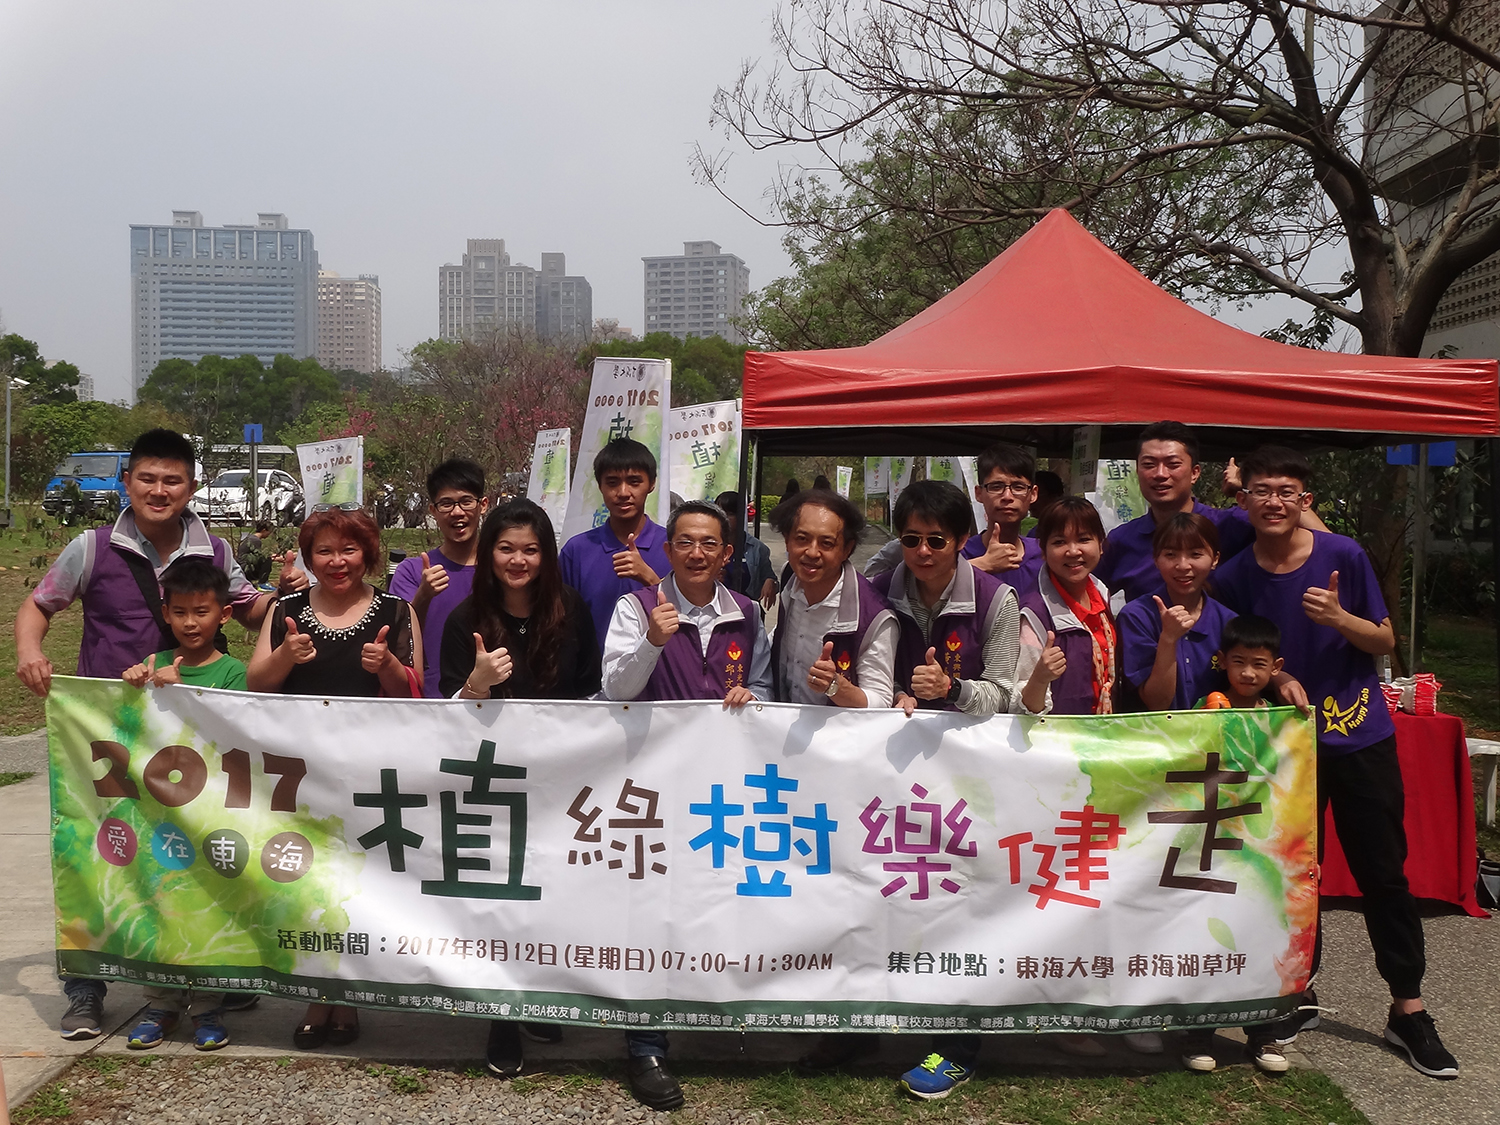 Taichung City Representative Parents Association participated with passion.